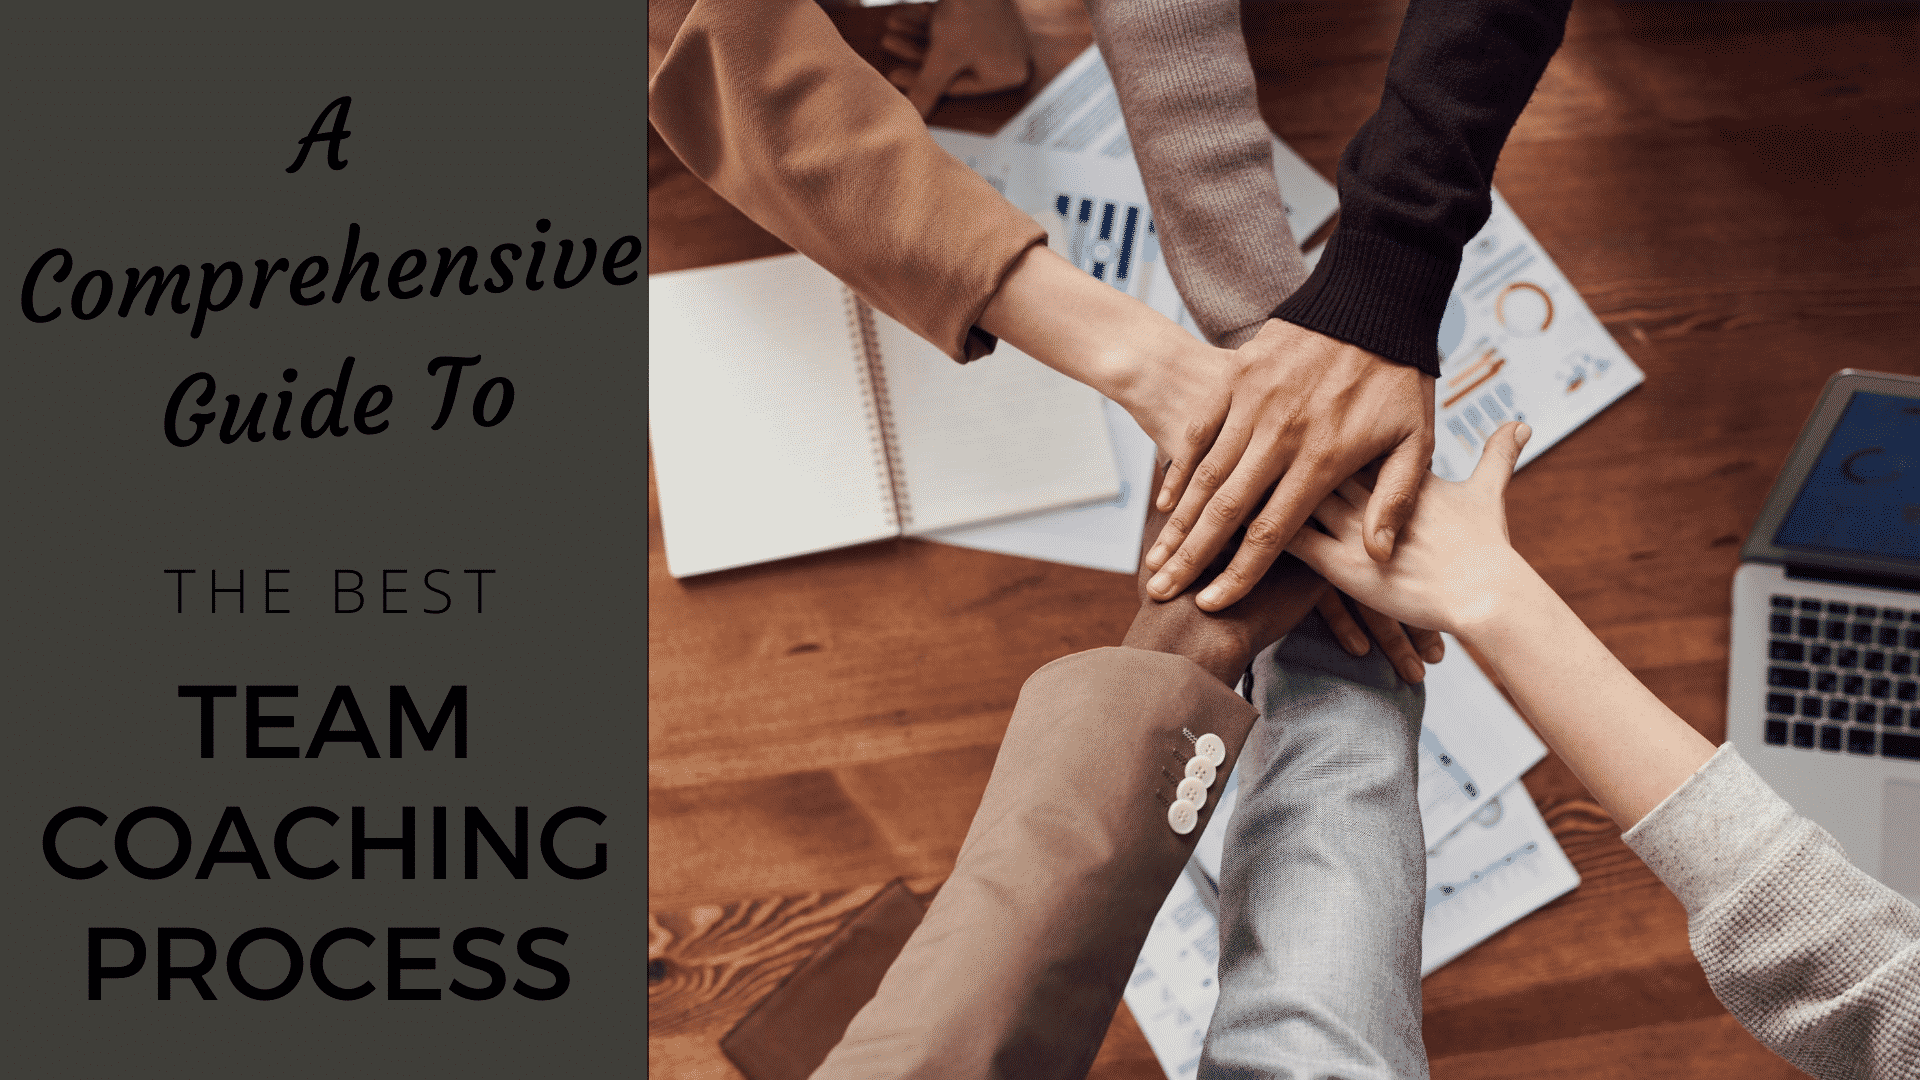 What Makes the Best Team Coaching Process [2020]? Team Coaching